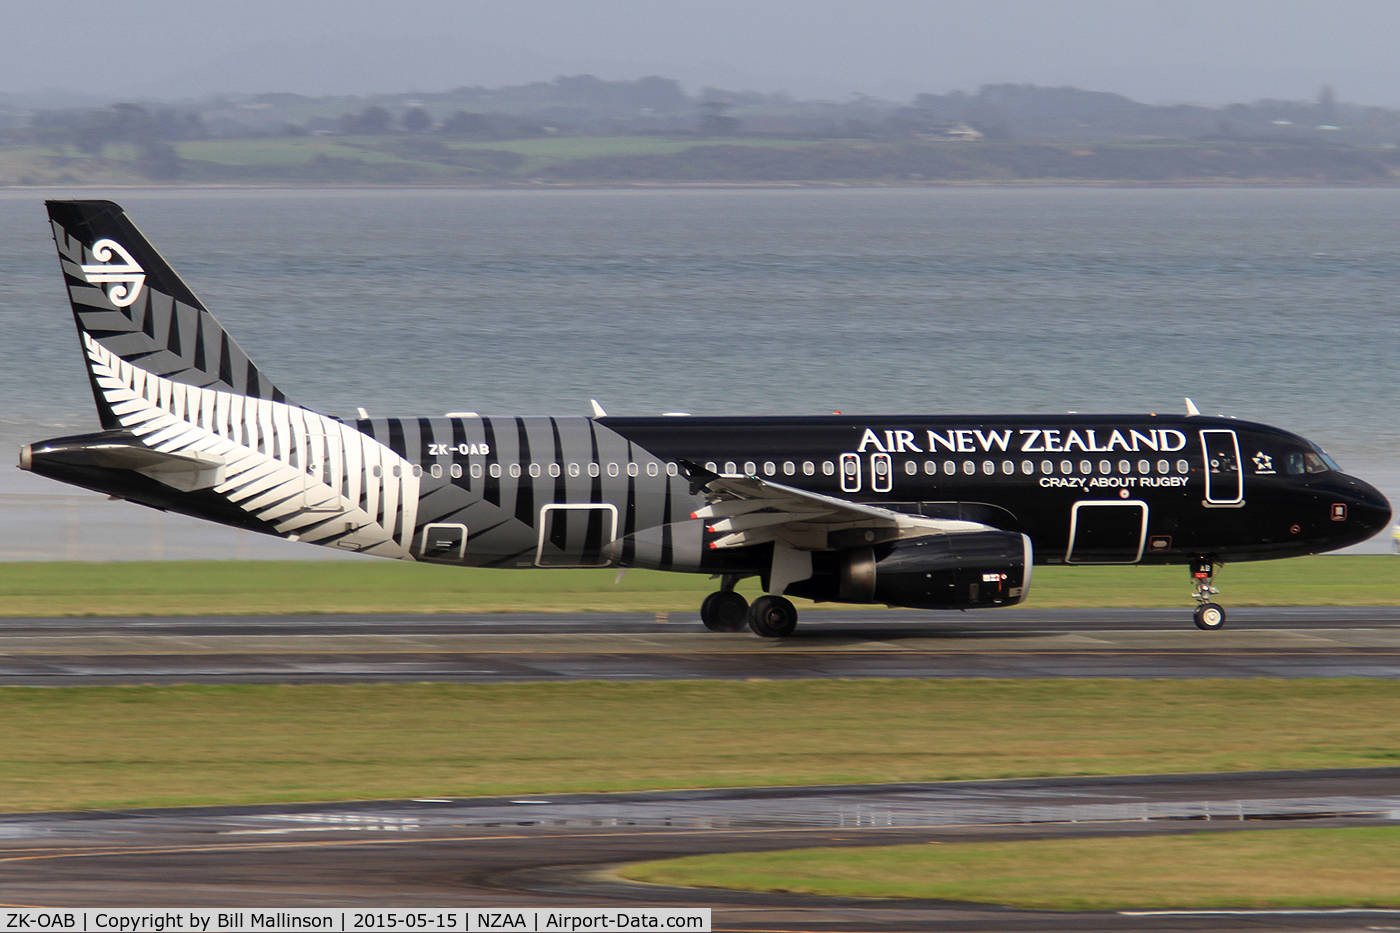 ZK-OAB, 2010 Airbus A320-232 C/N 4553, rolling on 23 for WLG